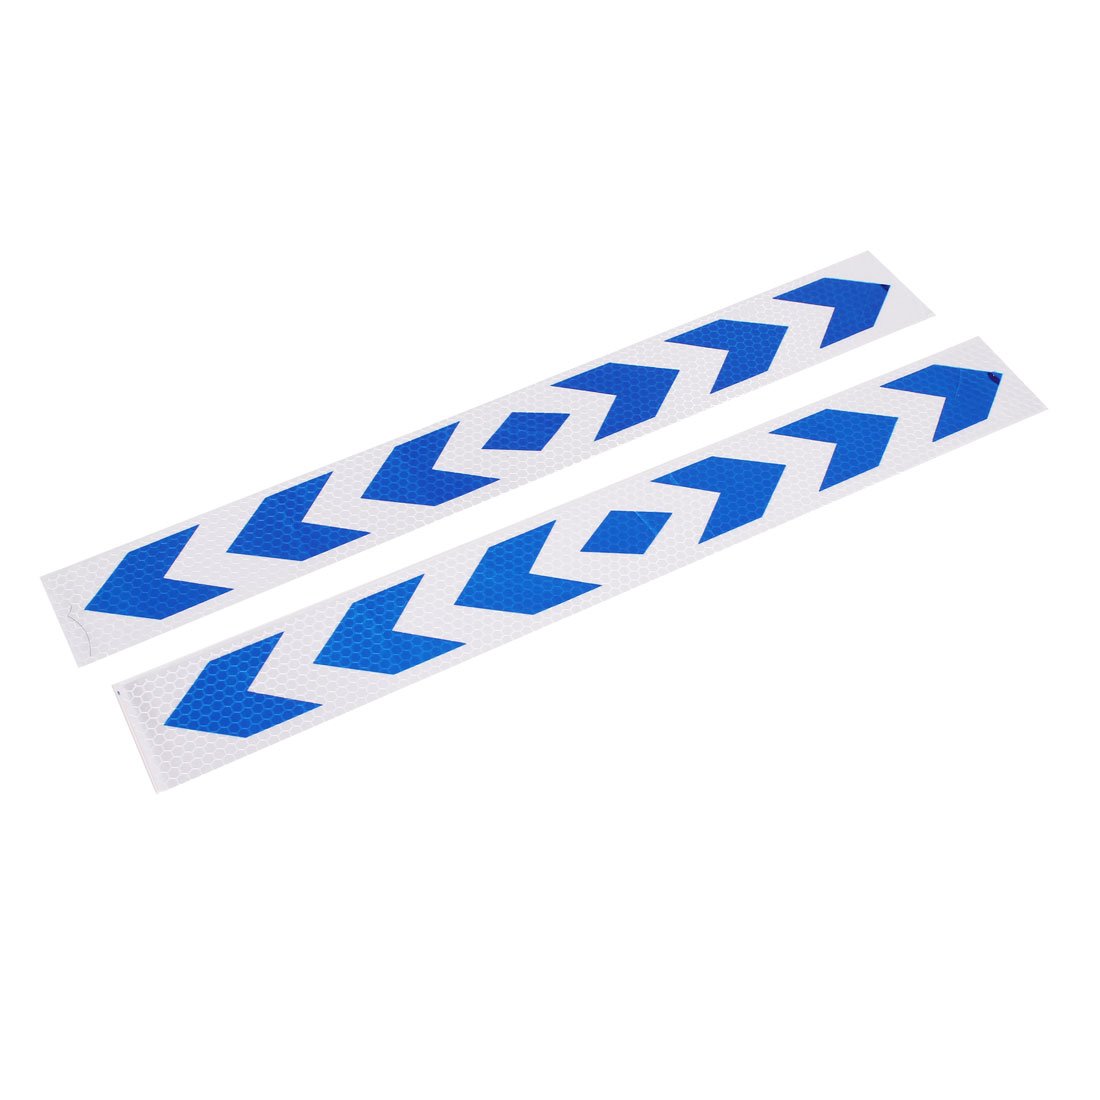 2pcs 40cm x 5cm Arrows Print Self Adhesive Car Auto Reflective Warning Sign Stickers Decal White Blue